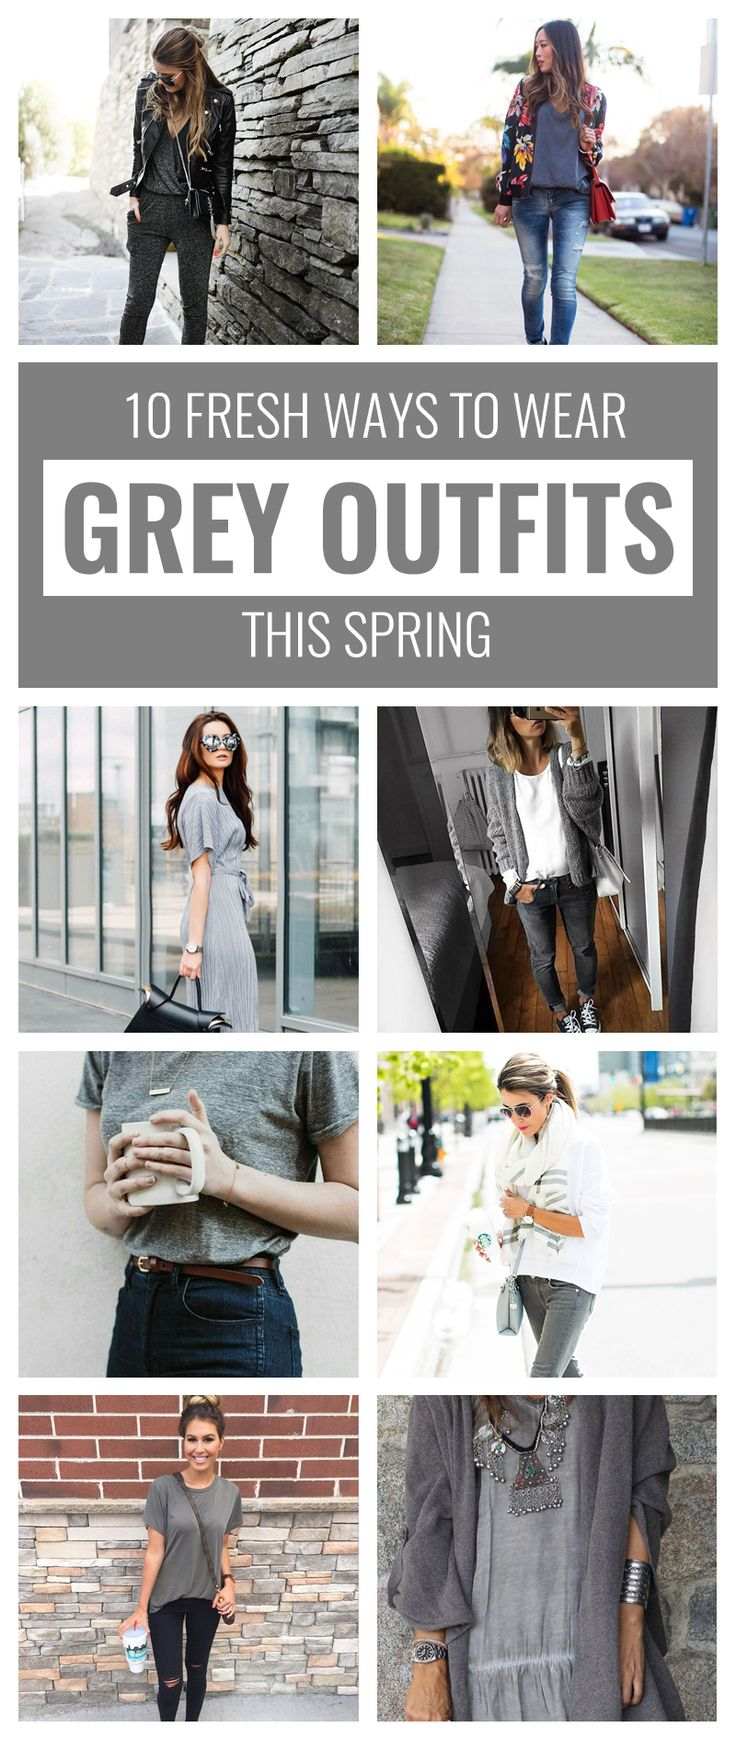 10 Fresh Ways to Wear Grey Outfits This Spring